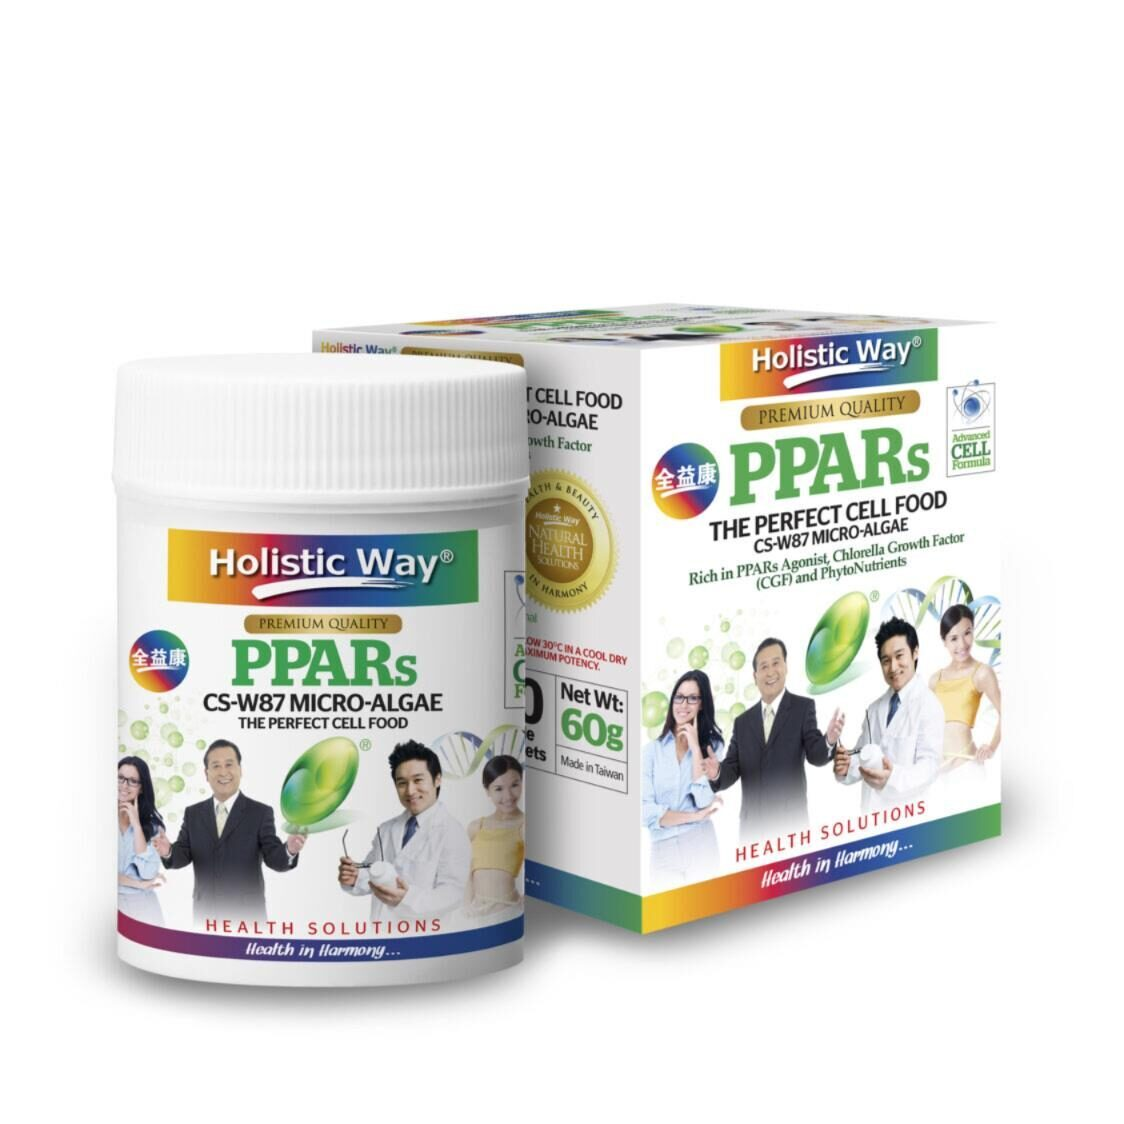 Holistic Way PPARs 300 Chewable Micro-Tablets